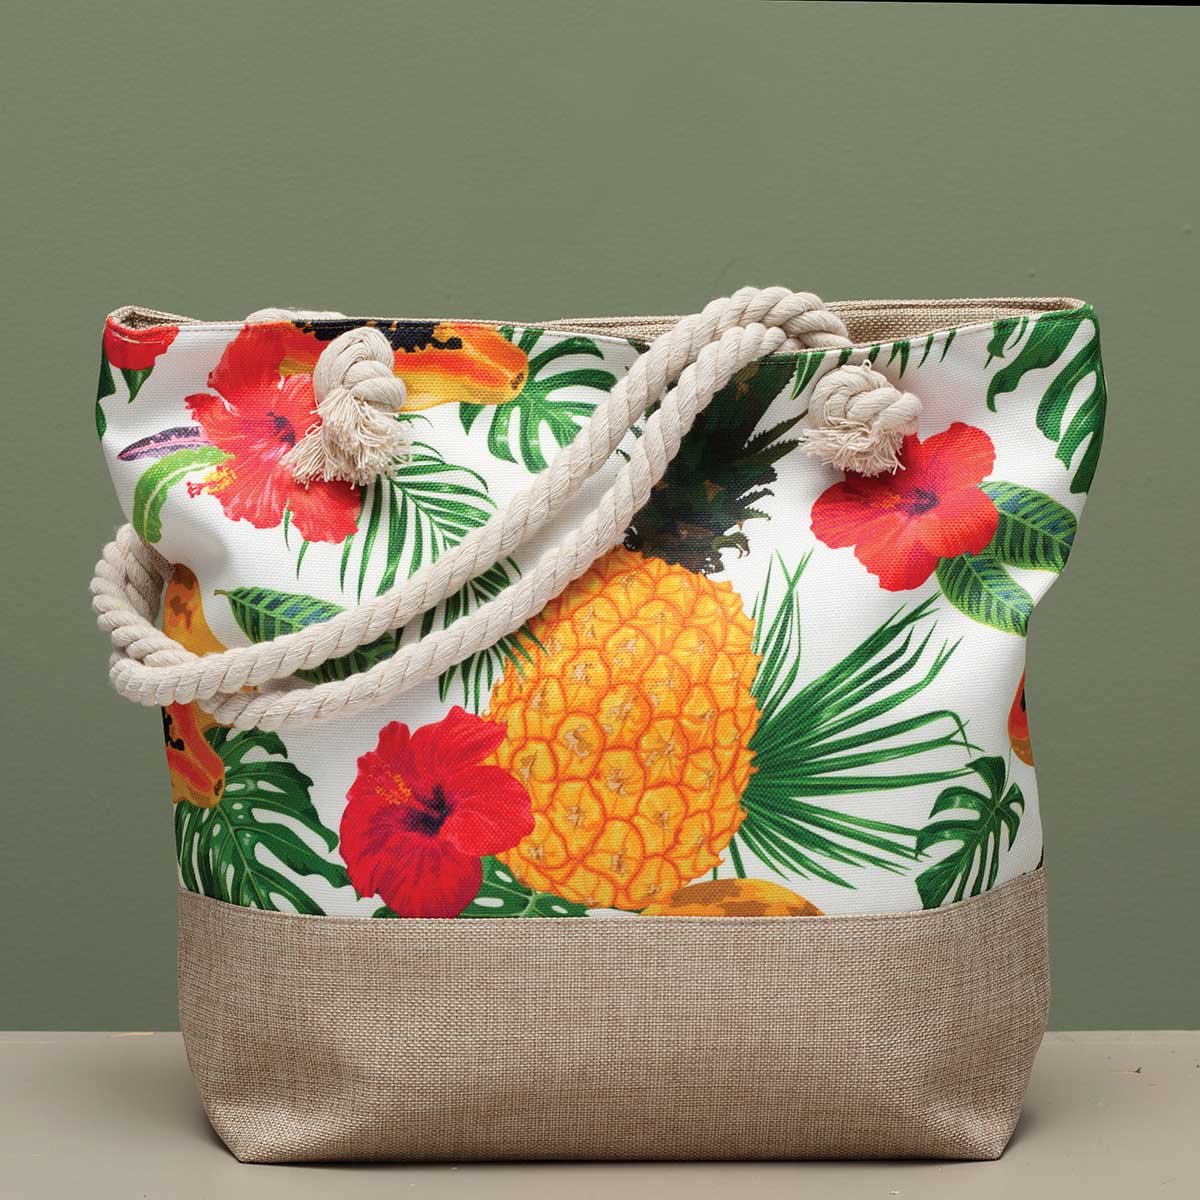 "Pineapple and Hibiscus Tapestry Bag 17.5""x5""x14"" with 10"" Should"